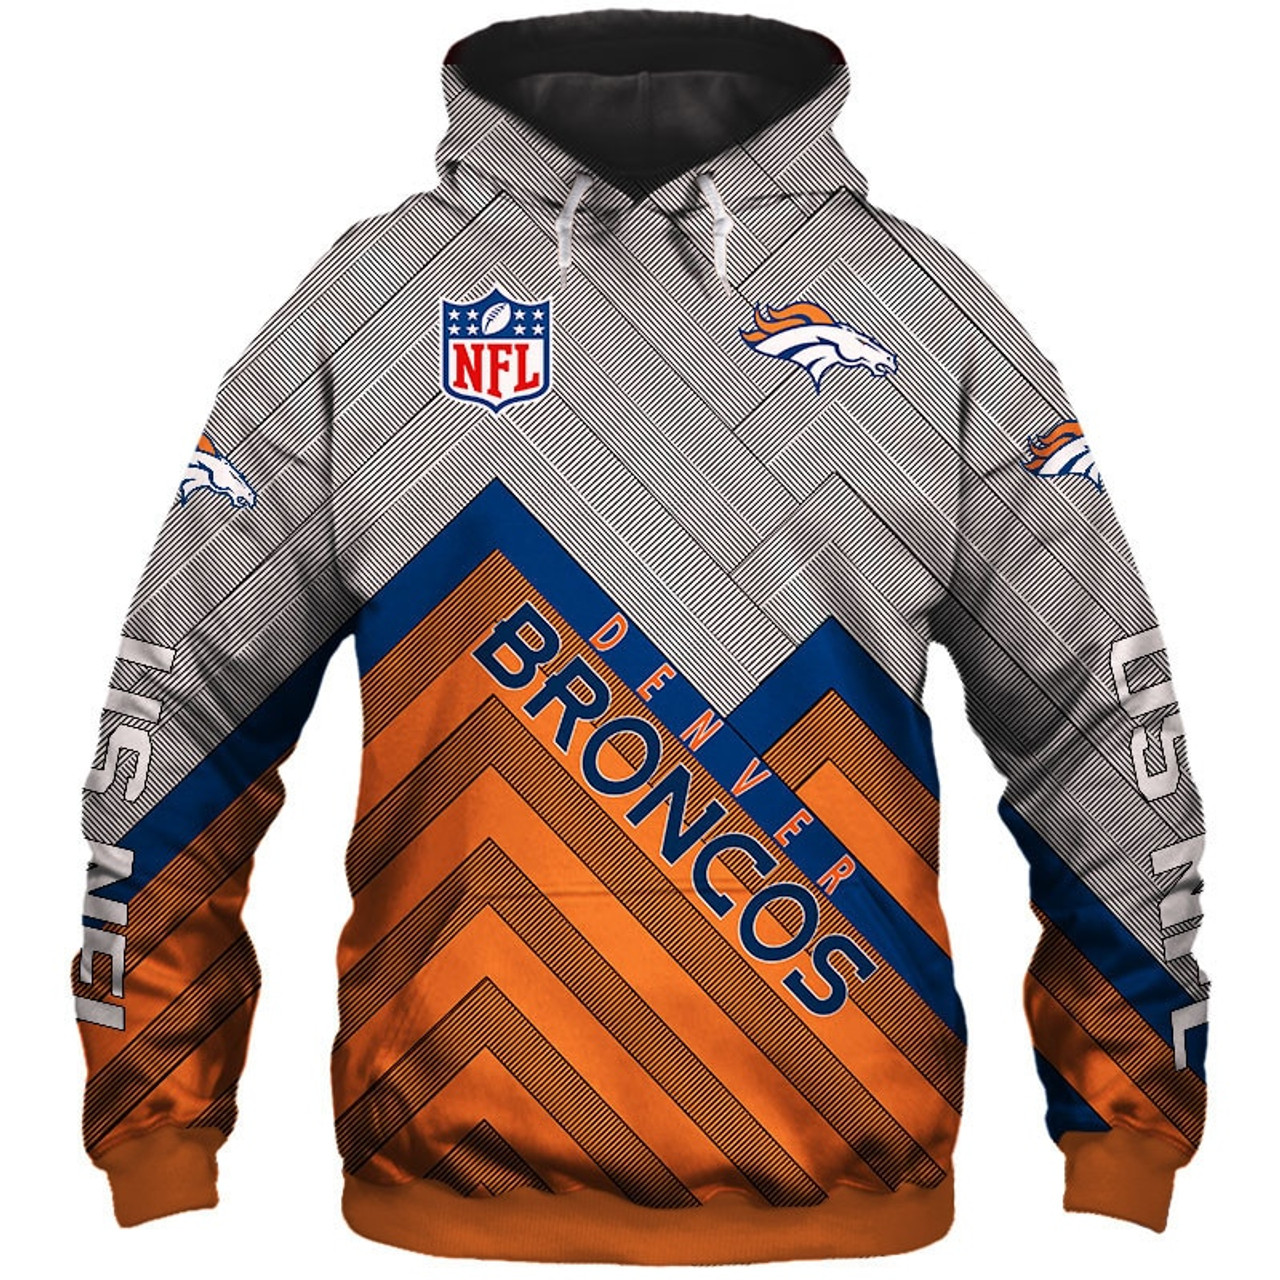 low priced 792ea baa93 **(NEW-OFFICIAL-N.F.L.DENVER-BRONCOS-PULLOVER-HOODIES/3D-CUSTOM-DENVERS-LOGOS  & OFFICIAL-BRONCOS-TEAM-COLORS/NICE-3D-DETAILED-GRAPHIC-PRINTED-DOUBLE-S...